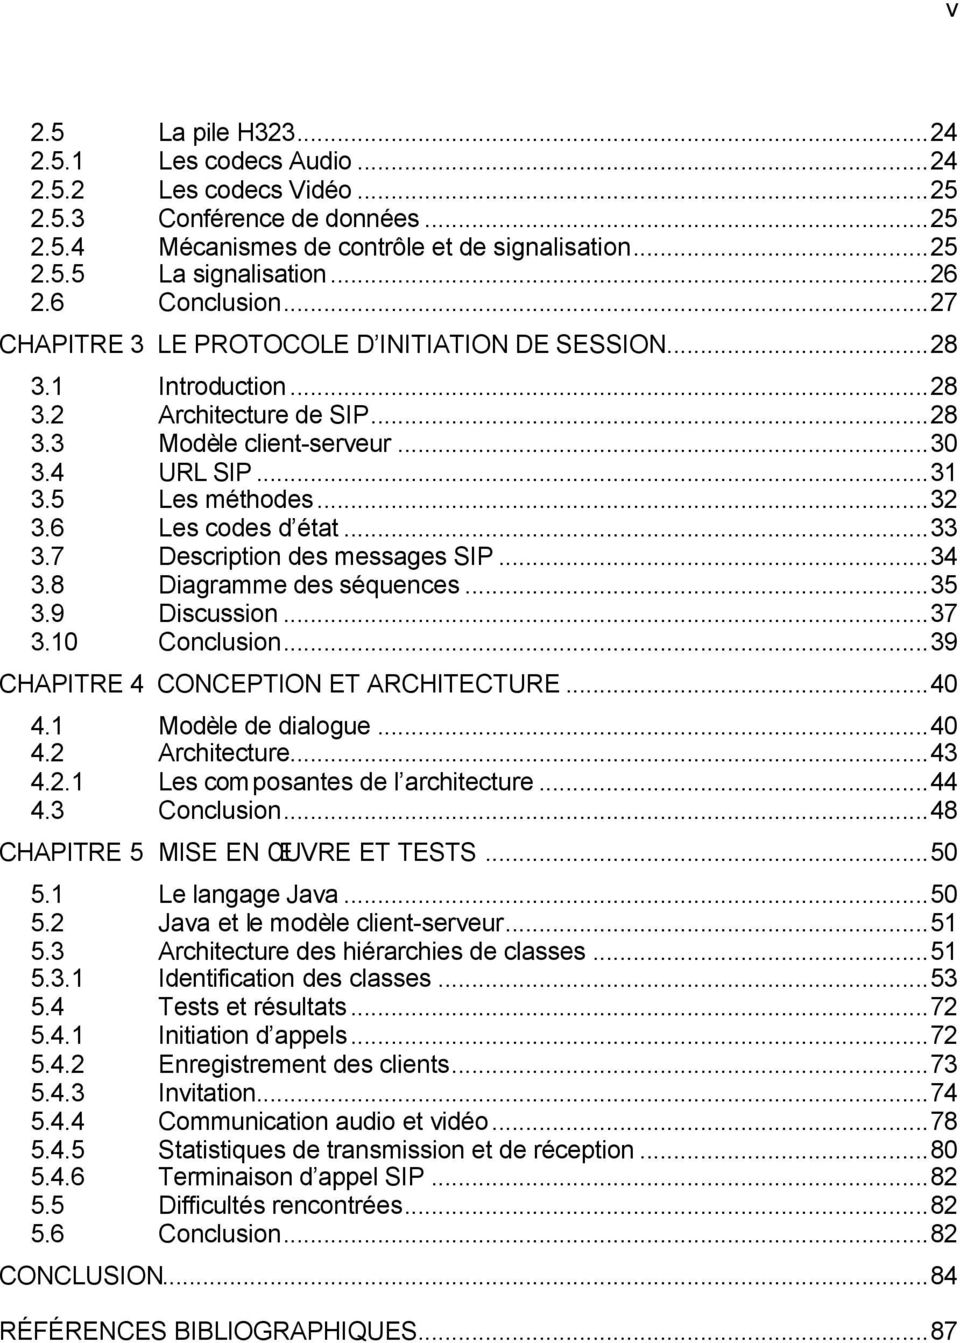 6 Les codes d état...33 3.7 Description des messages SIP...34 3.8 Diagramme des séquences...35 3.9 Discussion...37 3.10 Conclusion...39 CHAPITRE 4 CONCEPTION ET ARCHITECTURE...40 4.